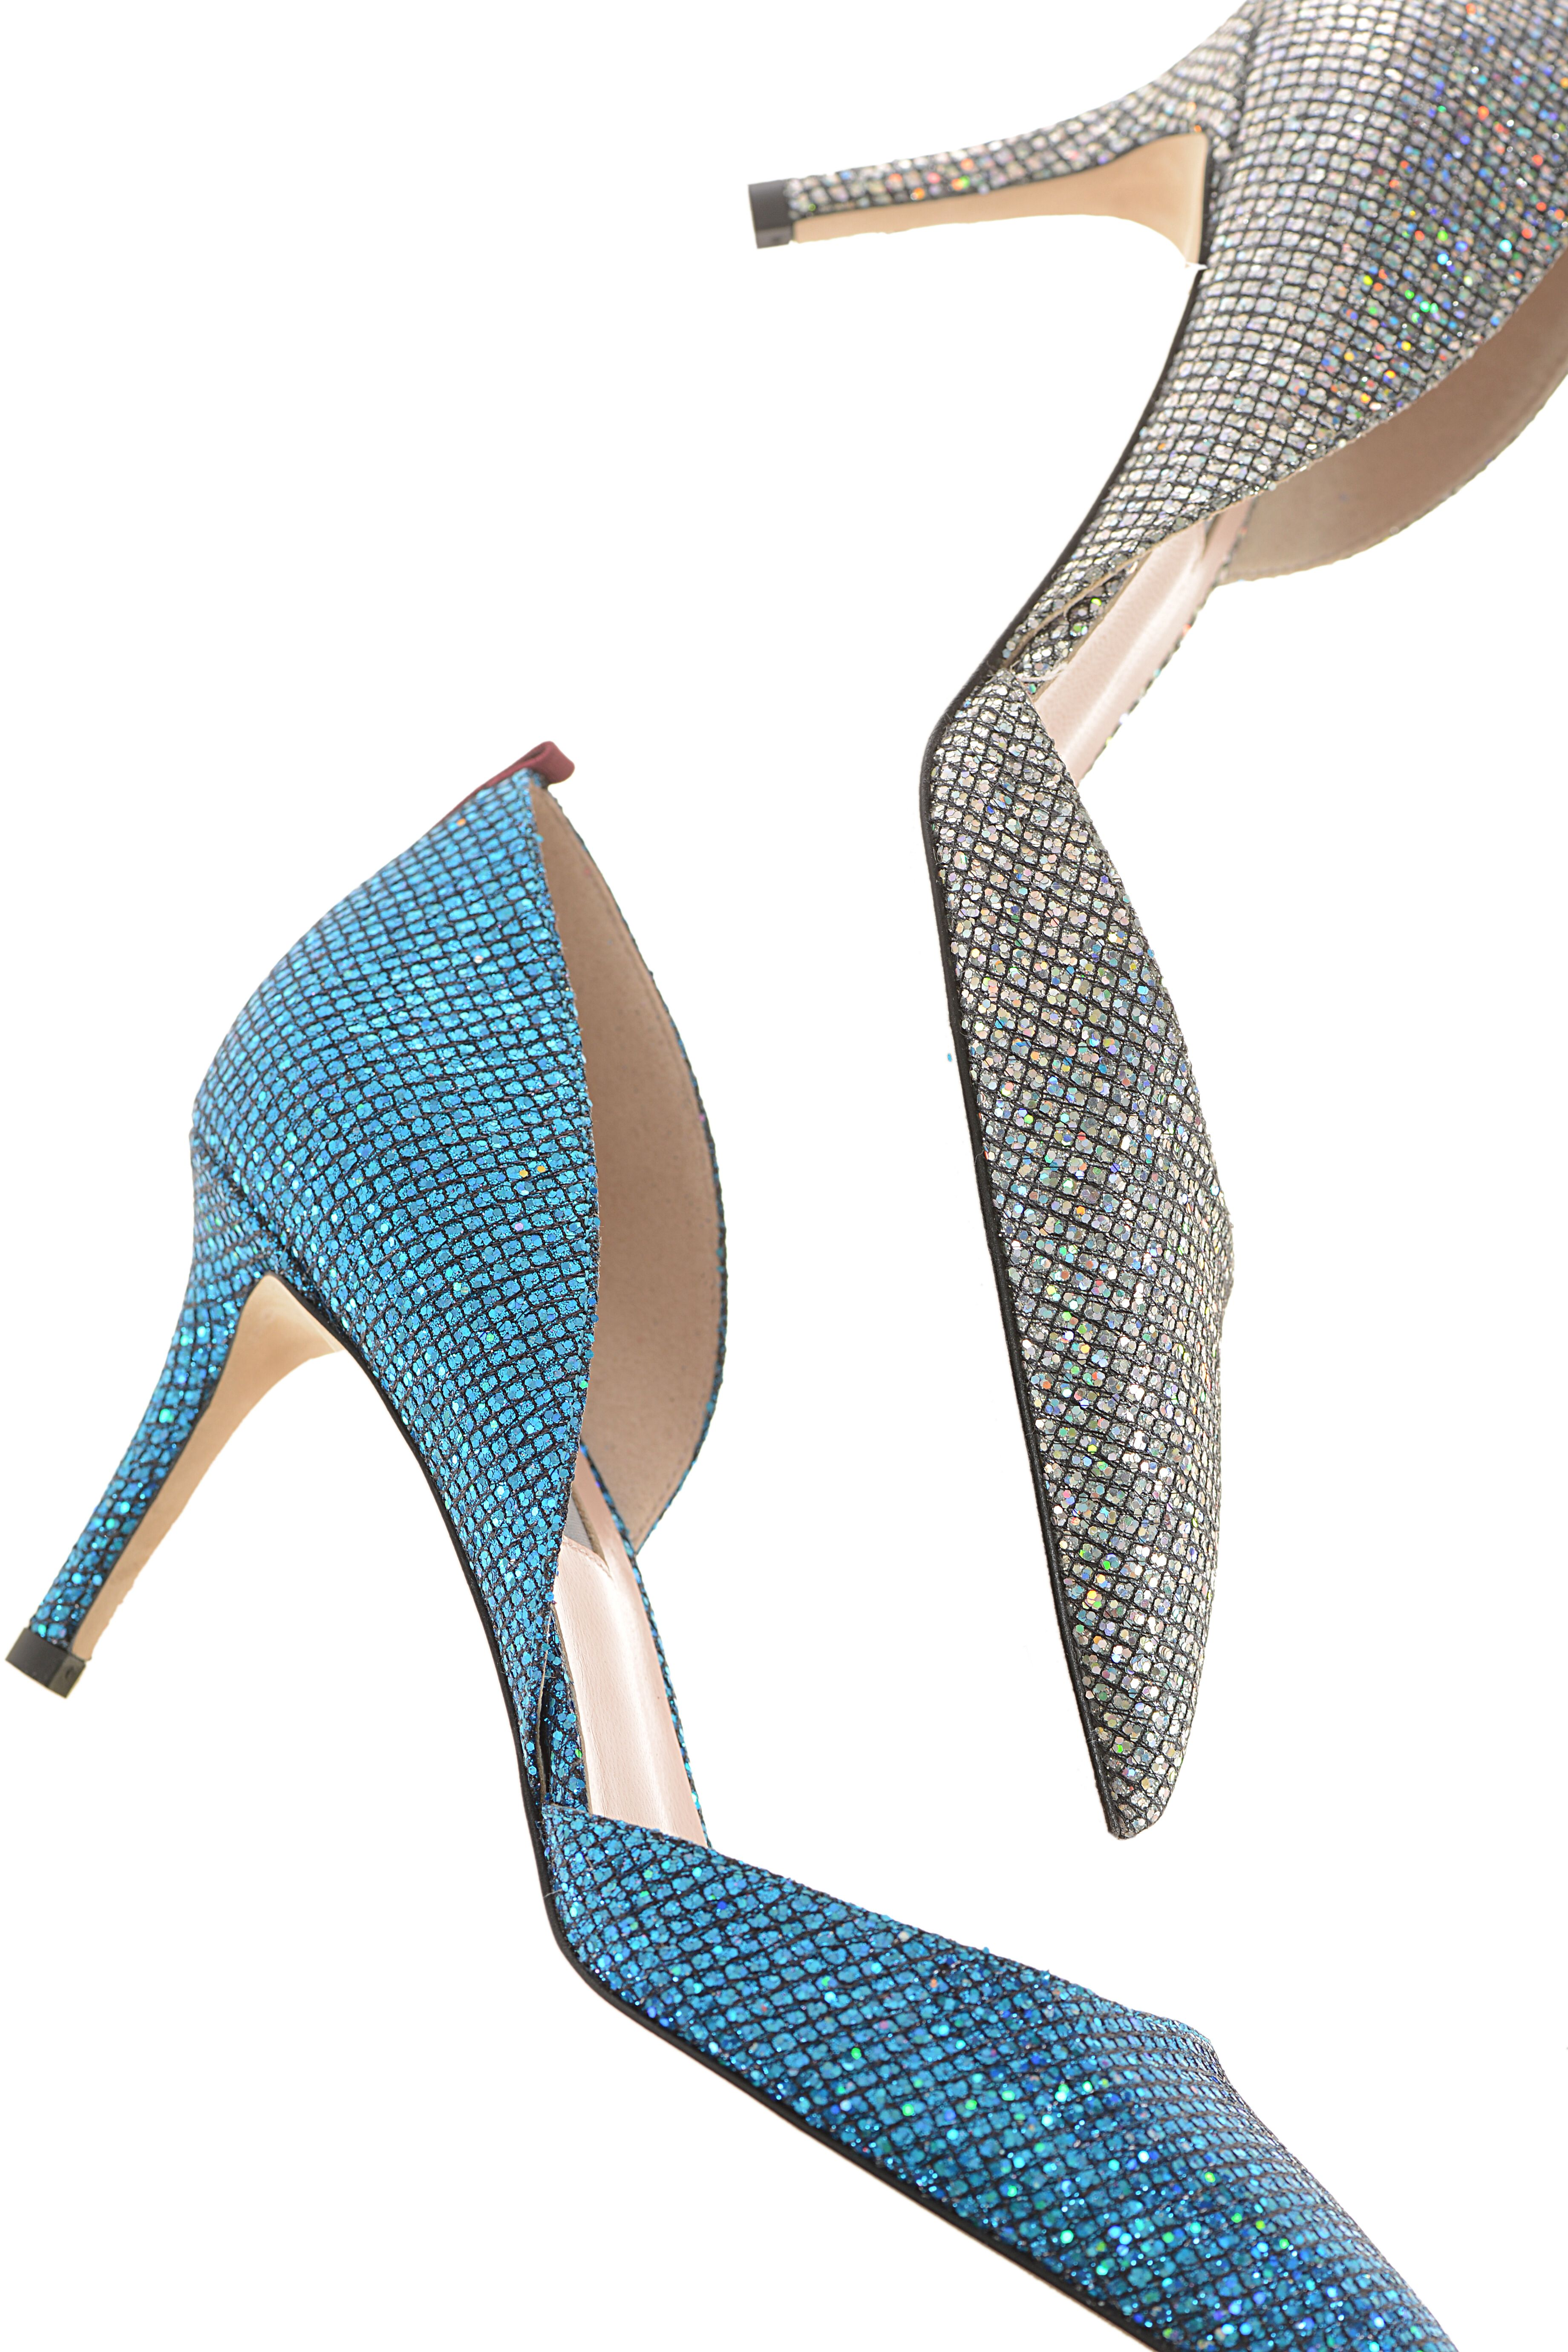 Sjpcollection Phantom In Scintillate And Flutter Cute Shoes Sjp By Sarah Jessica Parker Pumps